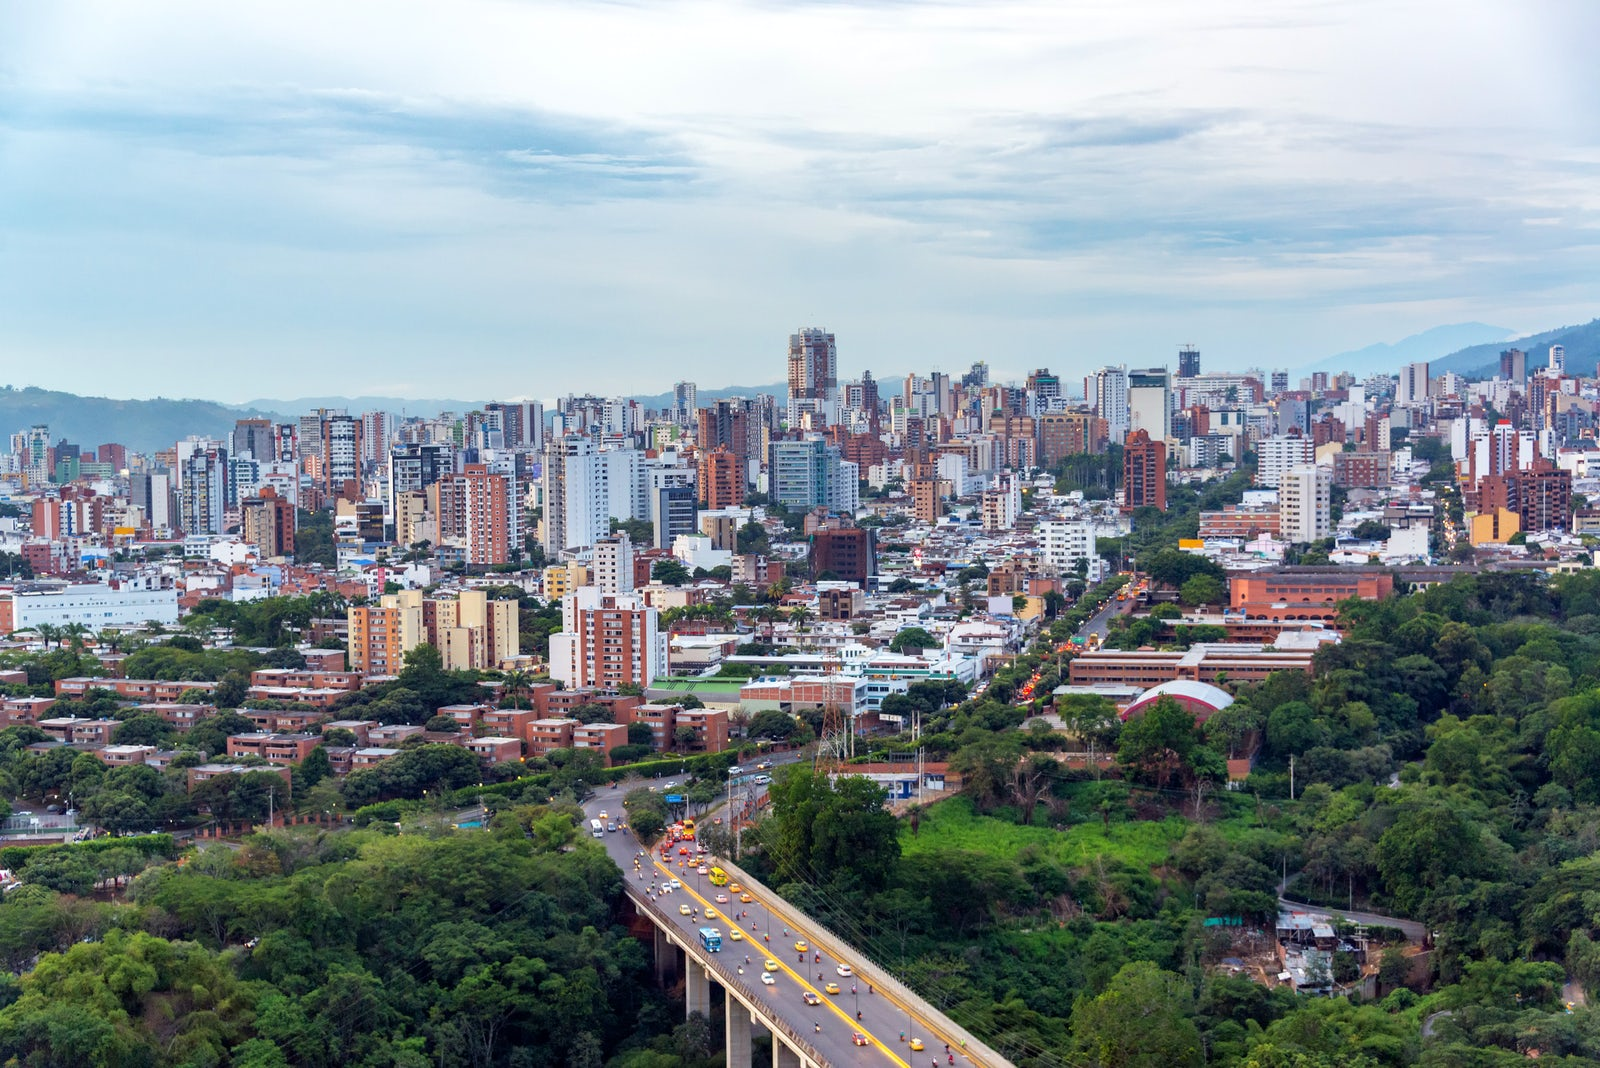 iStock/DC_Colombia